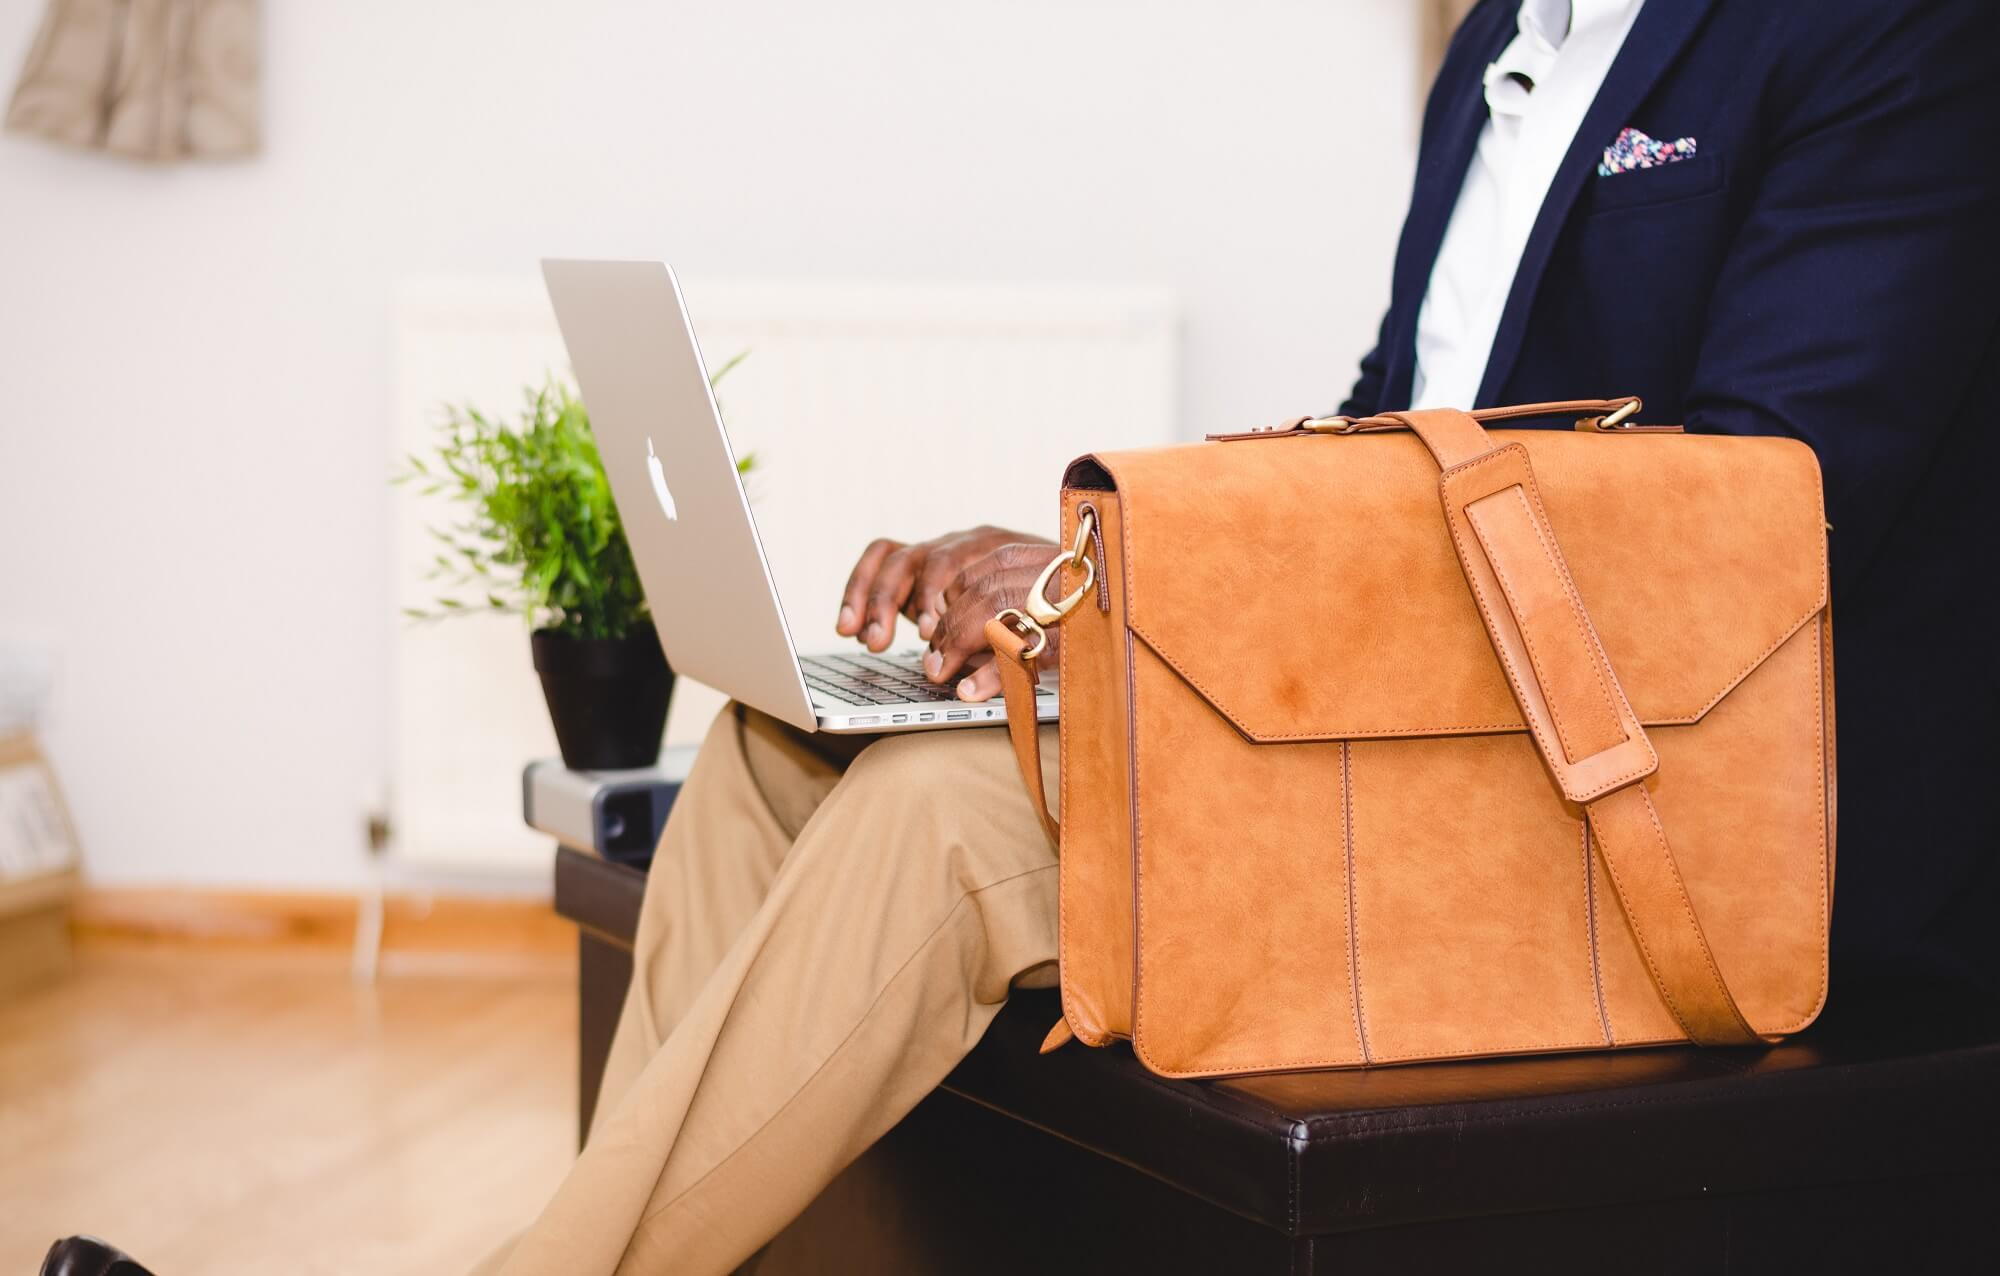 5 Reasons You Should Launch an Ecommerce Business